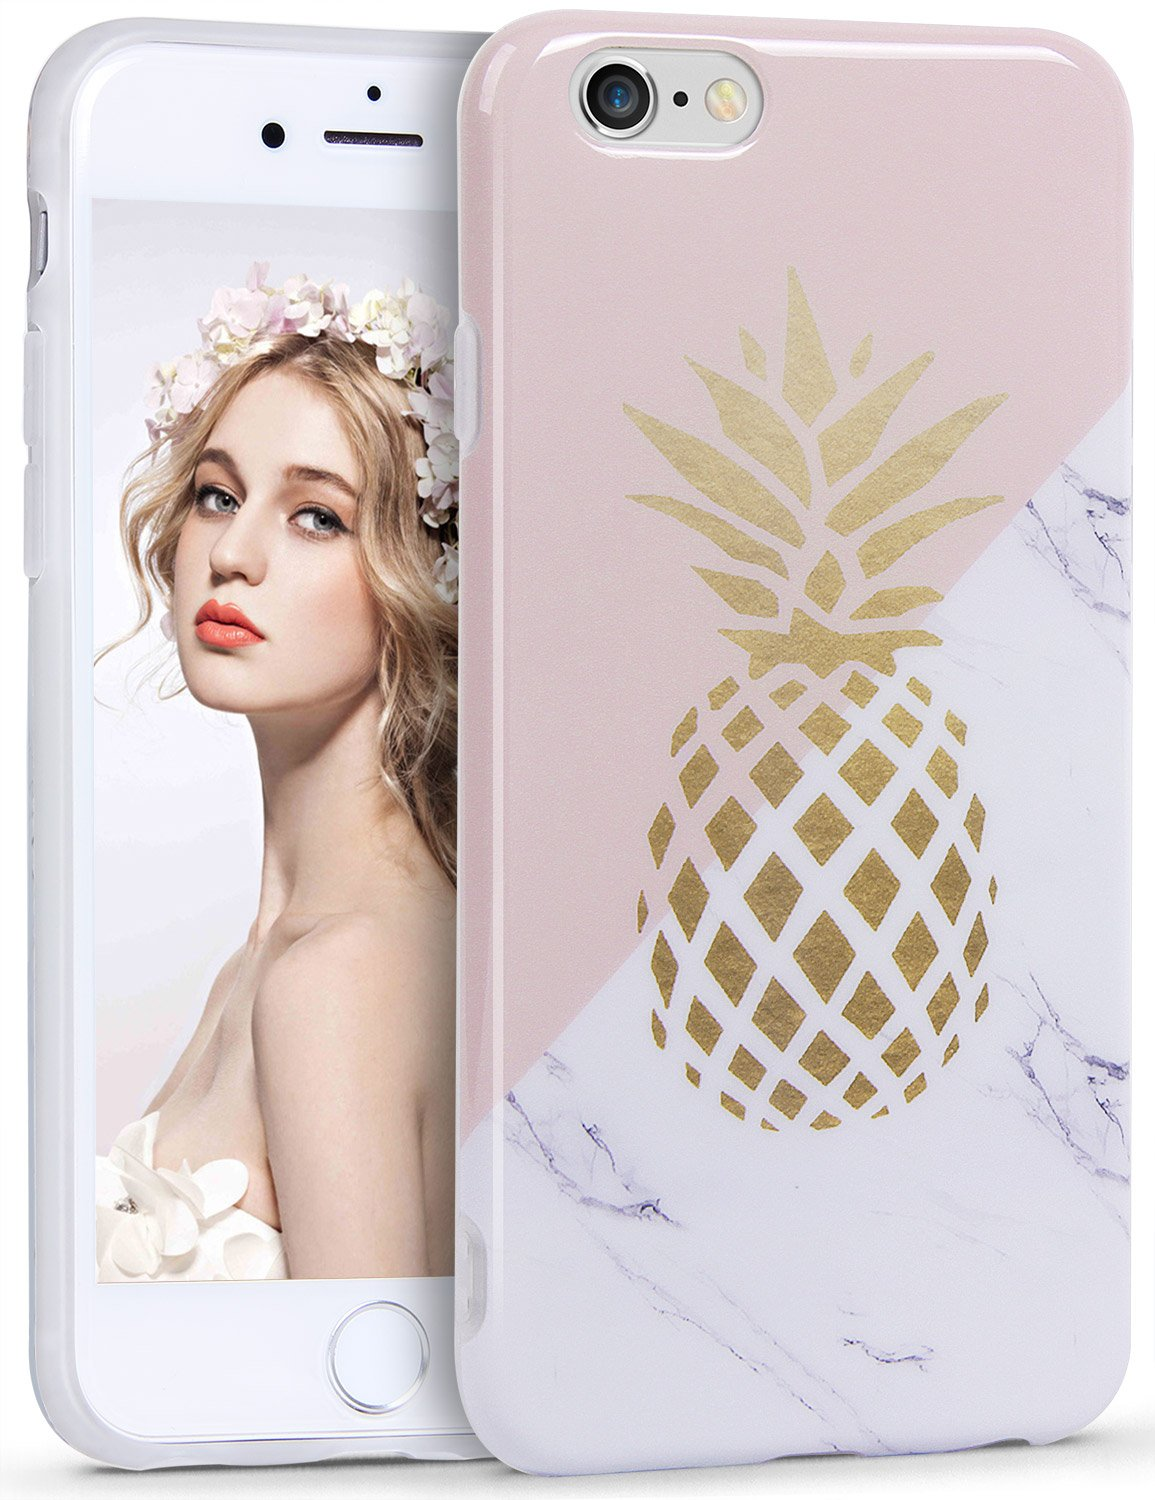 cute iphone 6s cases amazon co ukiphone 6s case, imikoko™ iphone 6 case pineapple print clear crystal bumper pink cute